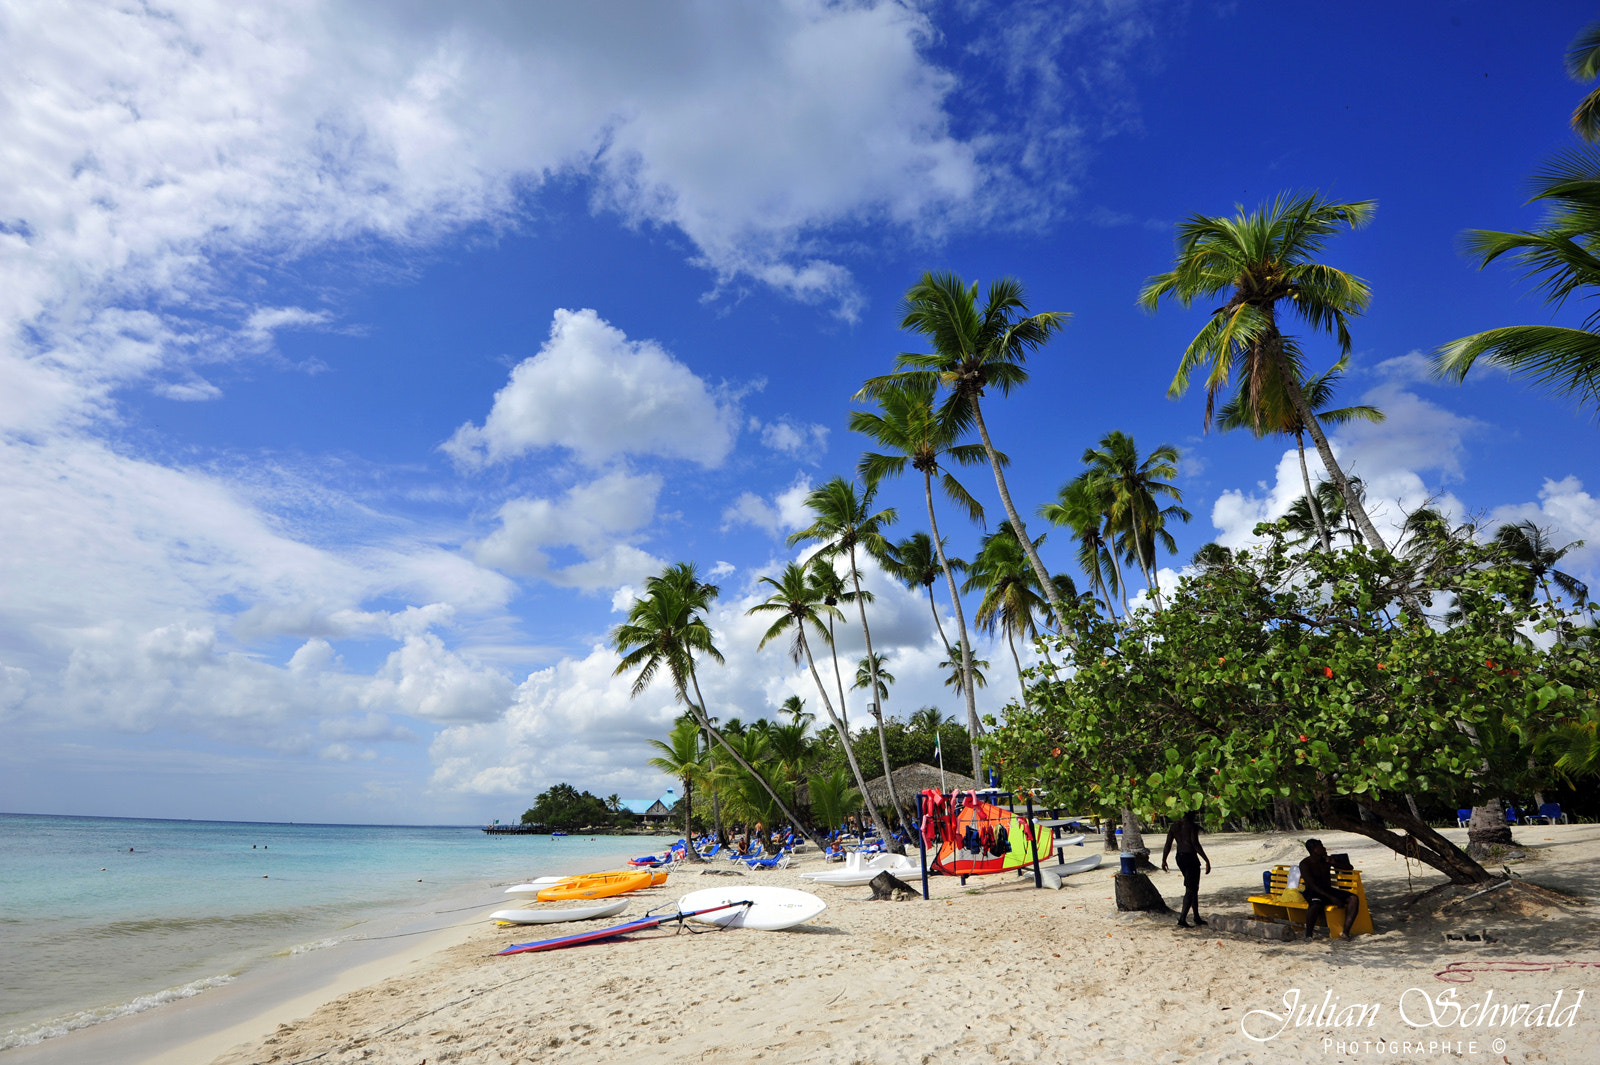 Photograph Beach of La Romana by Julian Schwald on 500px